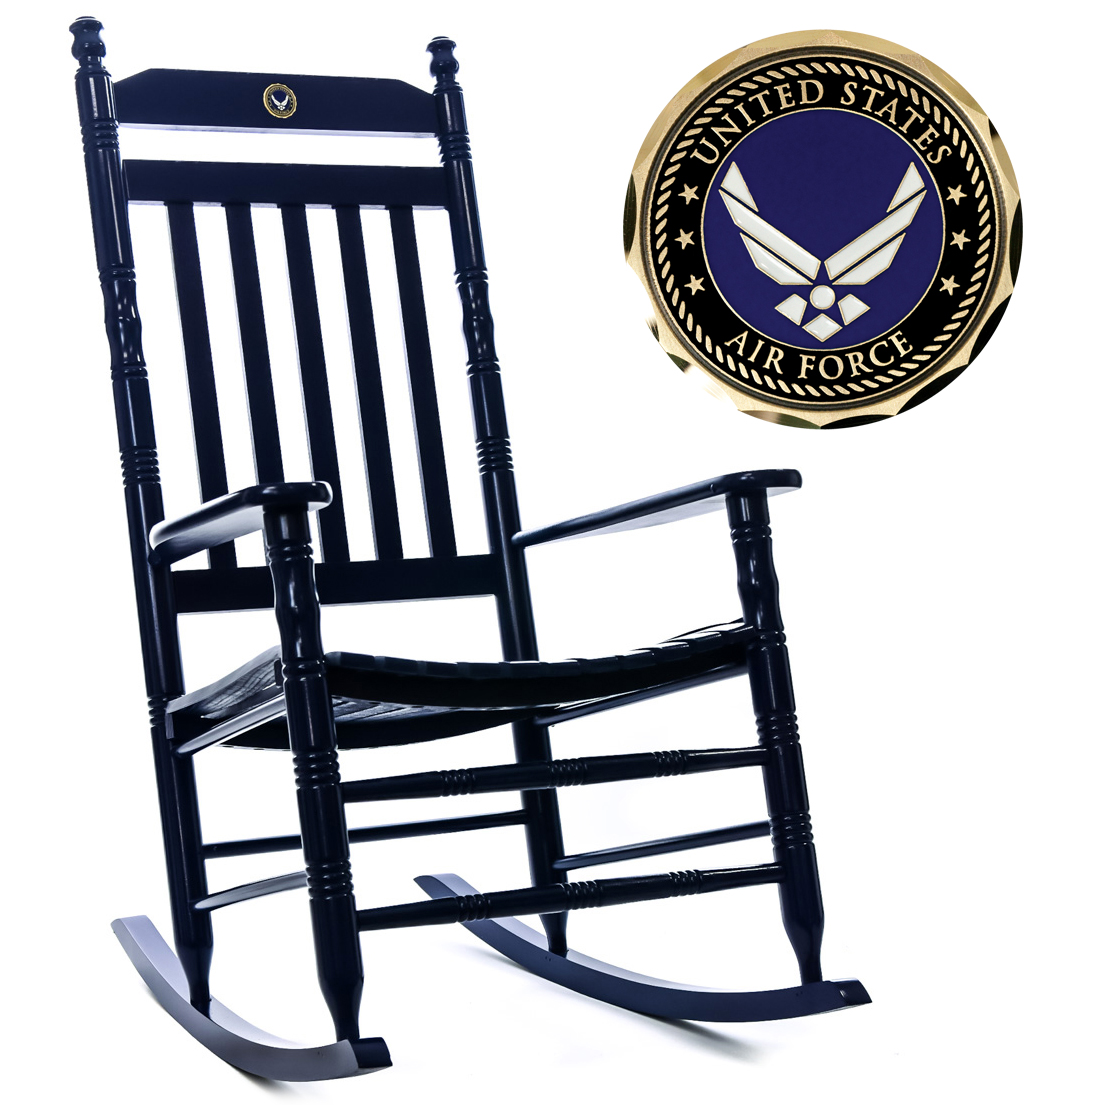 black rocking chairs cracker barrel power chair for sale | indoor furniture home - old country store